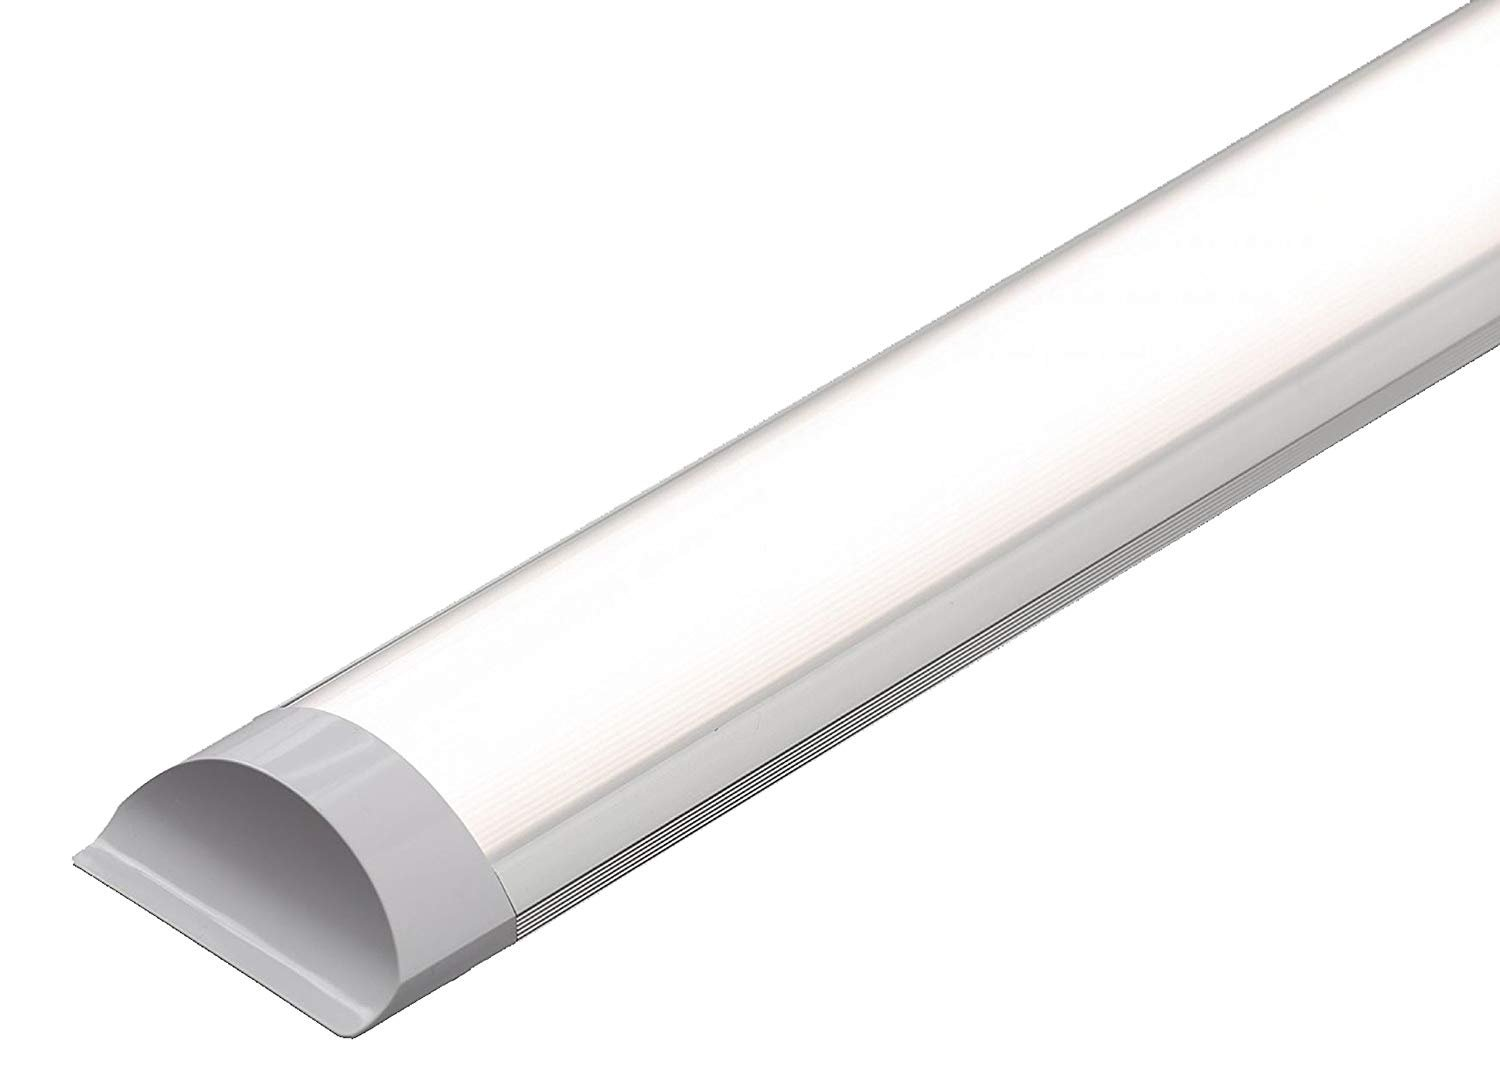 Elite Line 36W LED Batten Ceiling Lights 4FT Thin Tube Ceiling Light with IP66 Cold White 6500K 3200LM Slim Tri-proof Ceiling Lights for Garage, Underground Storage, Workshop, Shed, Bathroom, Commercial Indoor or Outdoor Application [Energy Class A] + 2 Y